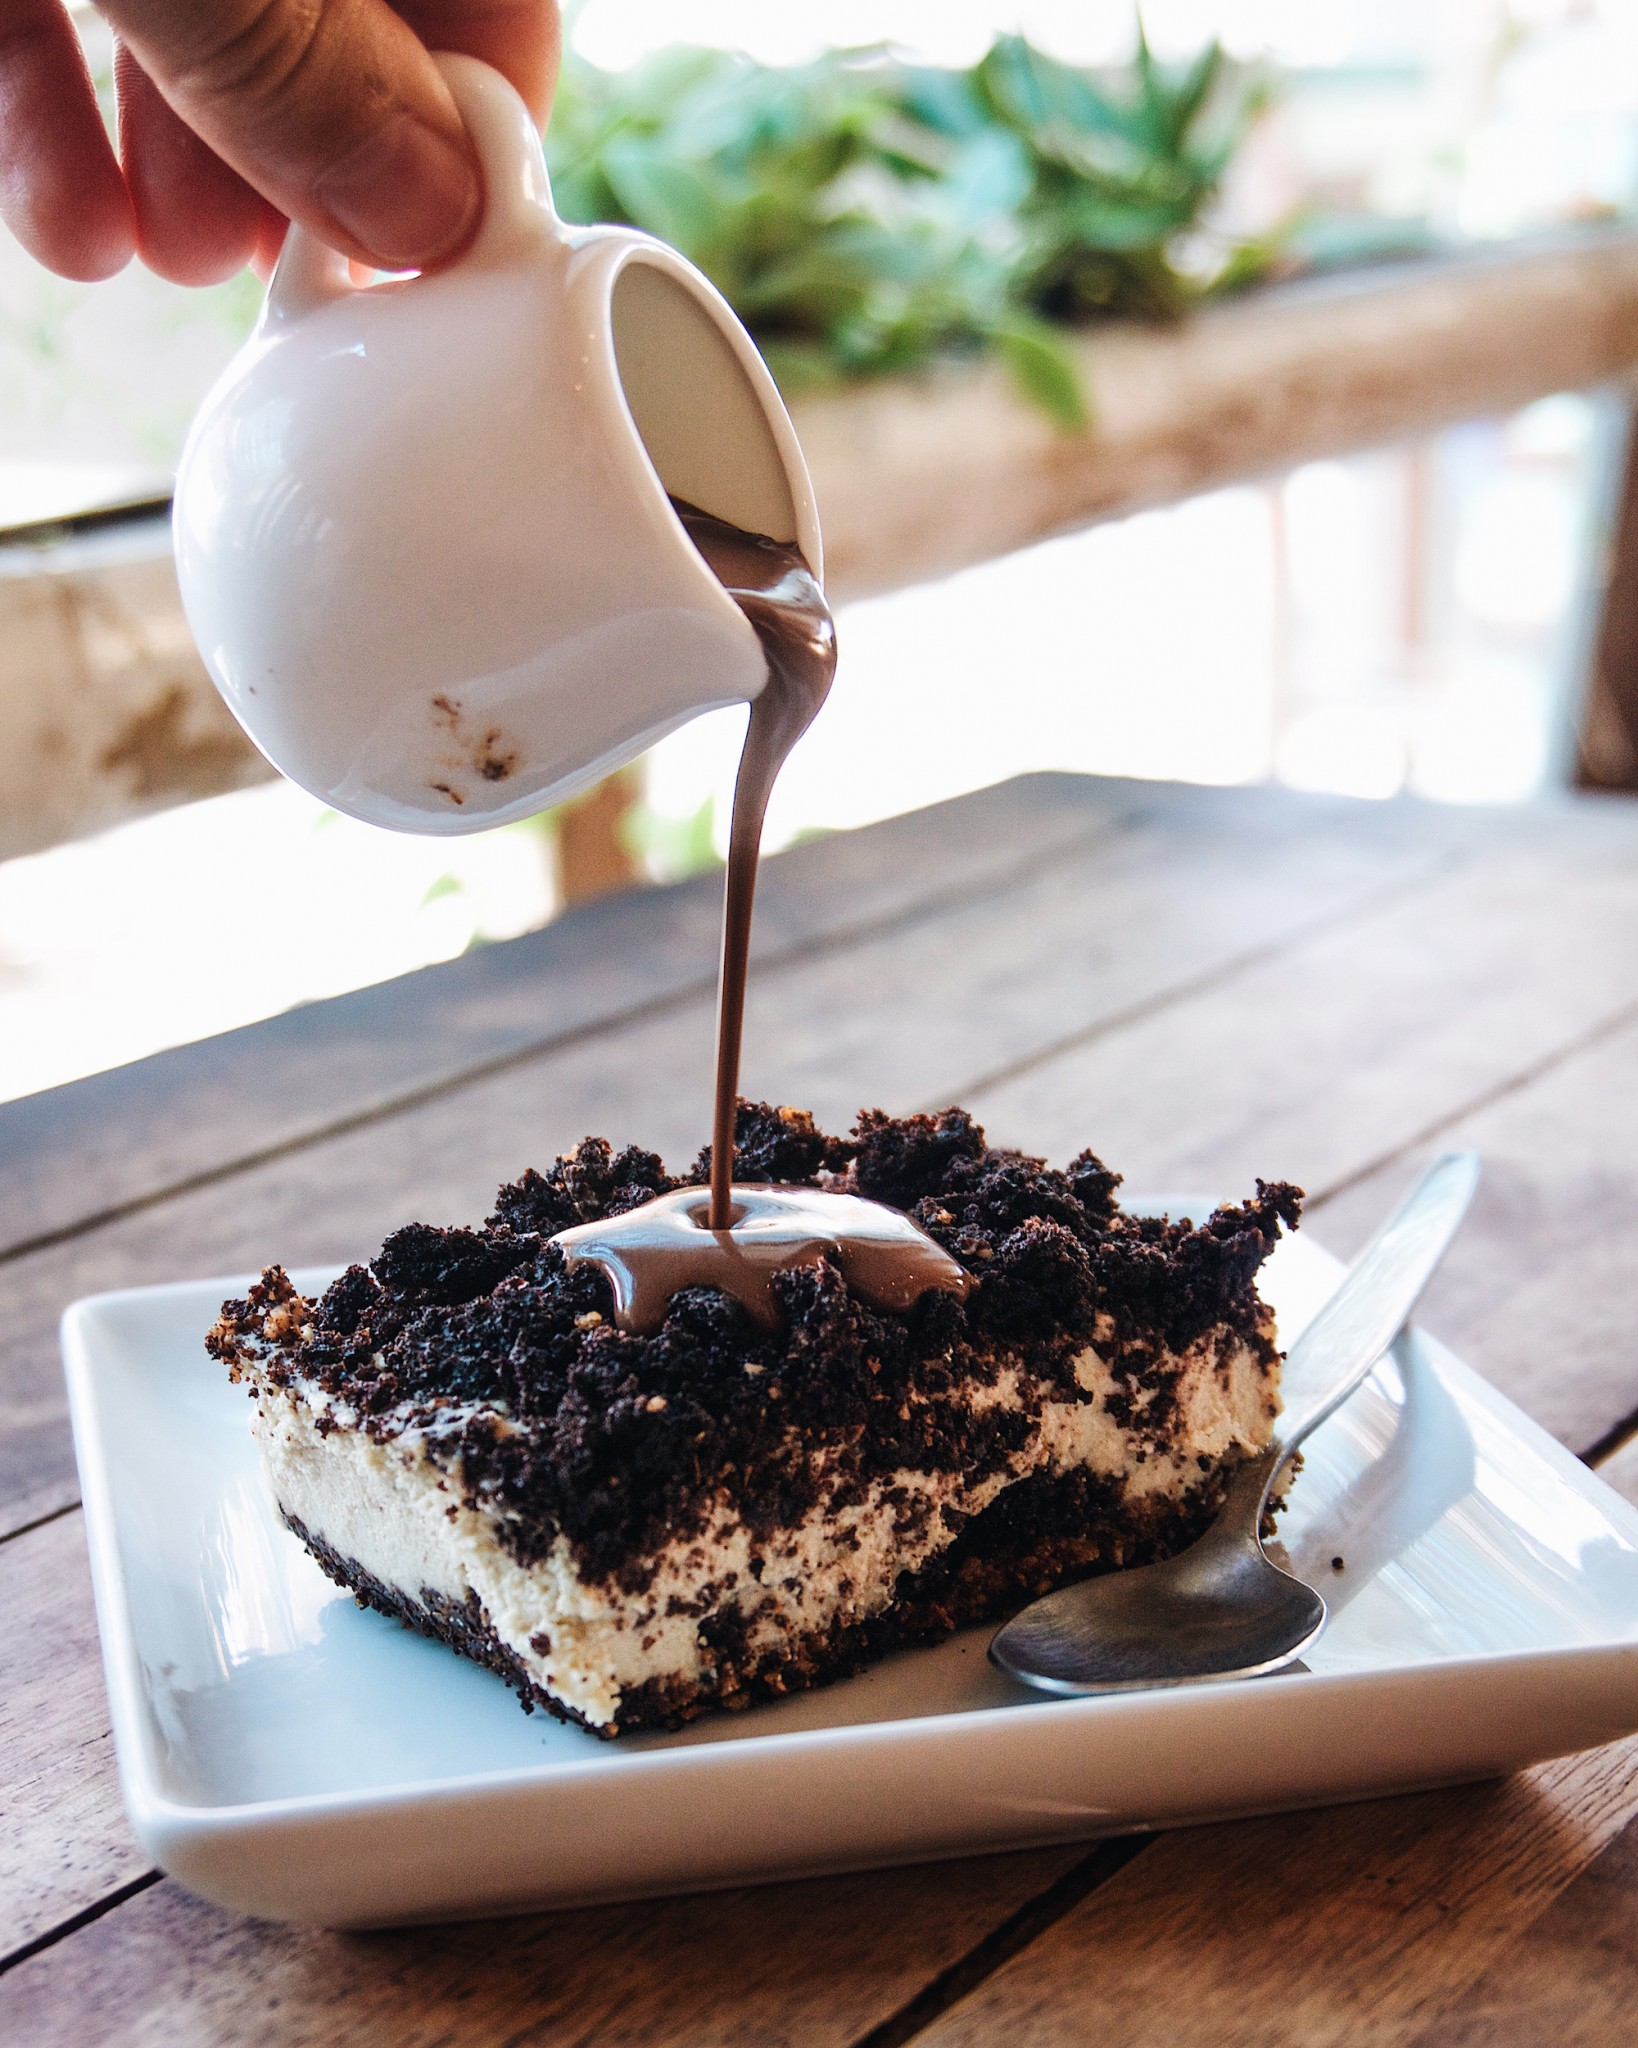 Oreo cheesecake at Eat.co